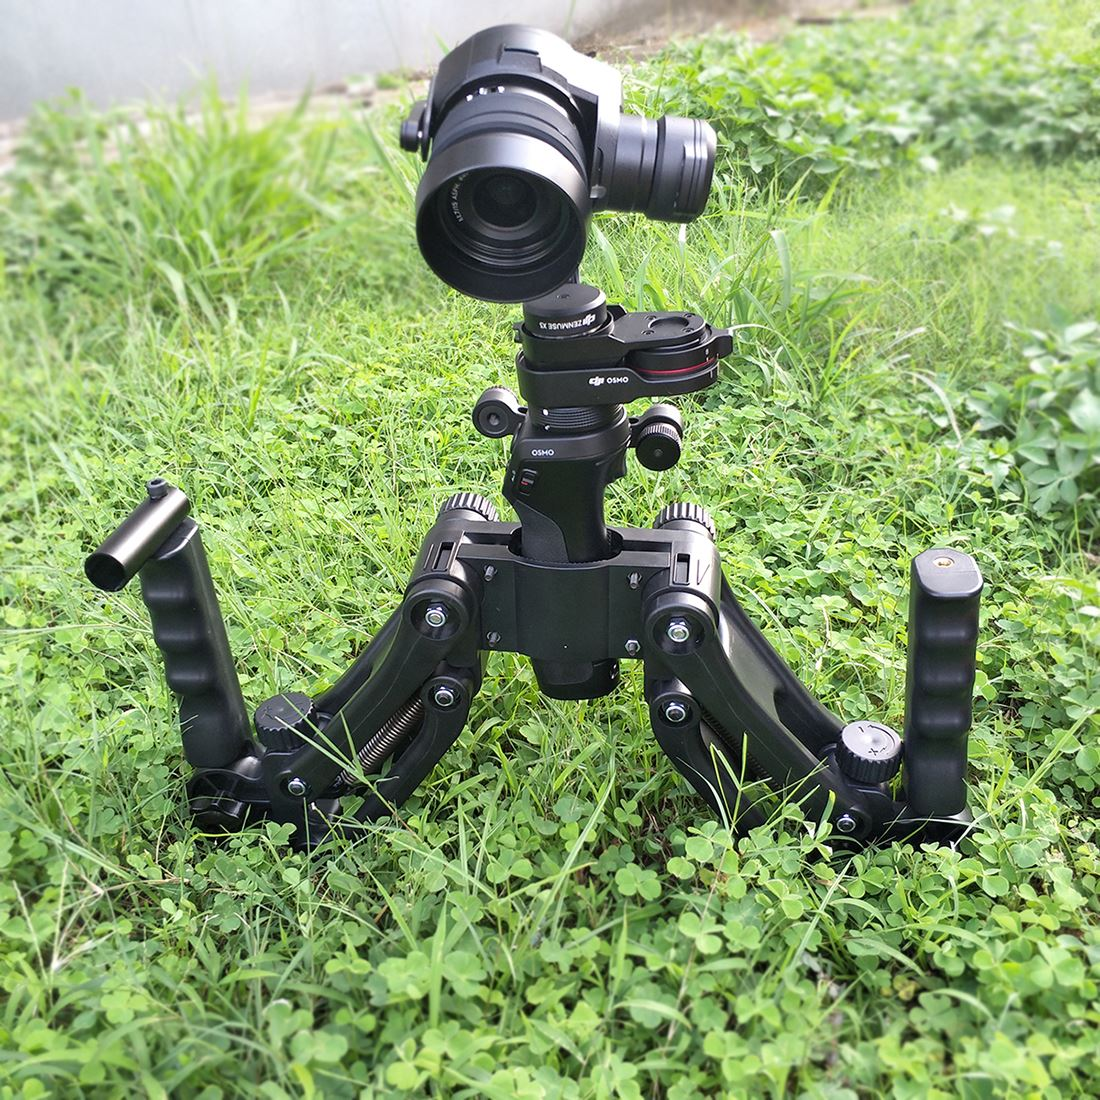 Handheld Gyro Stabilizer Anti-shake Stabilization Gimbal for DJI Ronin-S/for DJI OSMOHandheld Gyro Stabilizer Anti-shake Stabilization Gimbal for DJI Ronin-S/for DJI OSMO